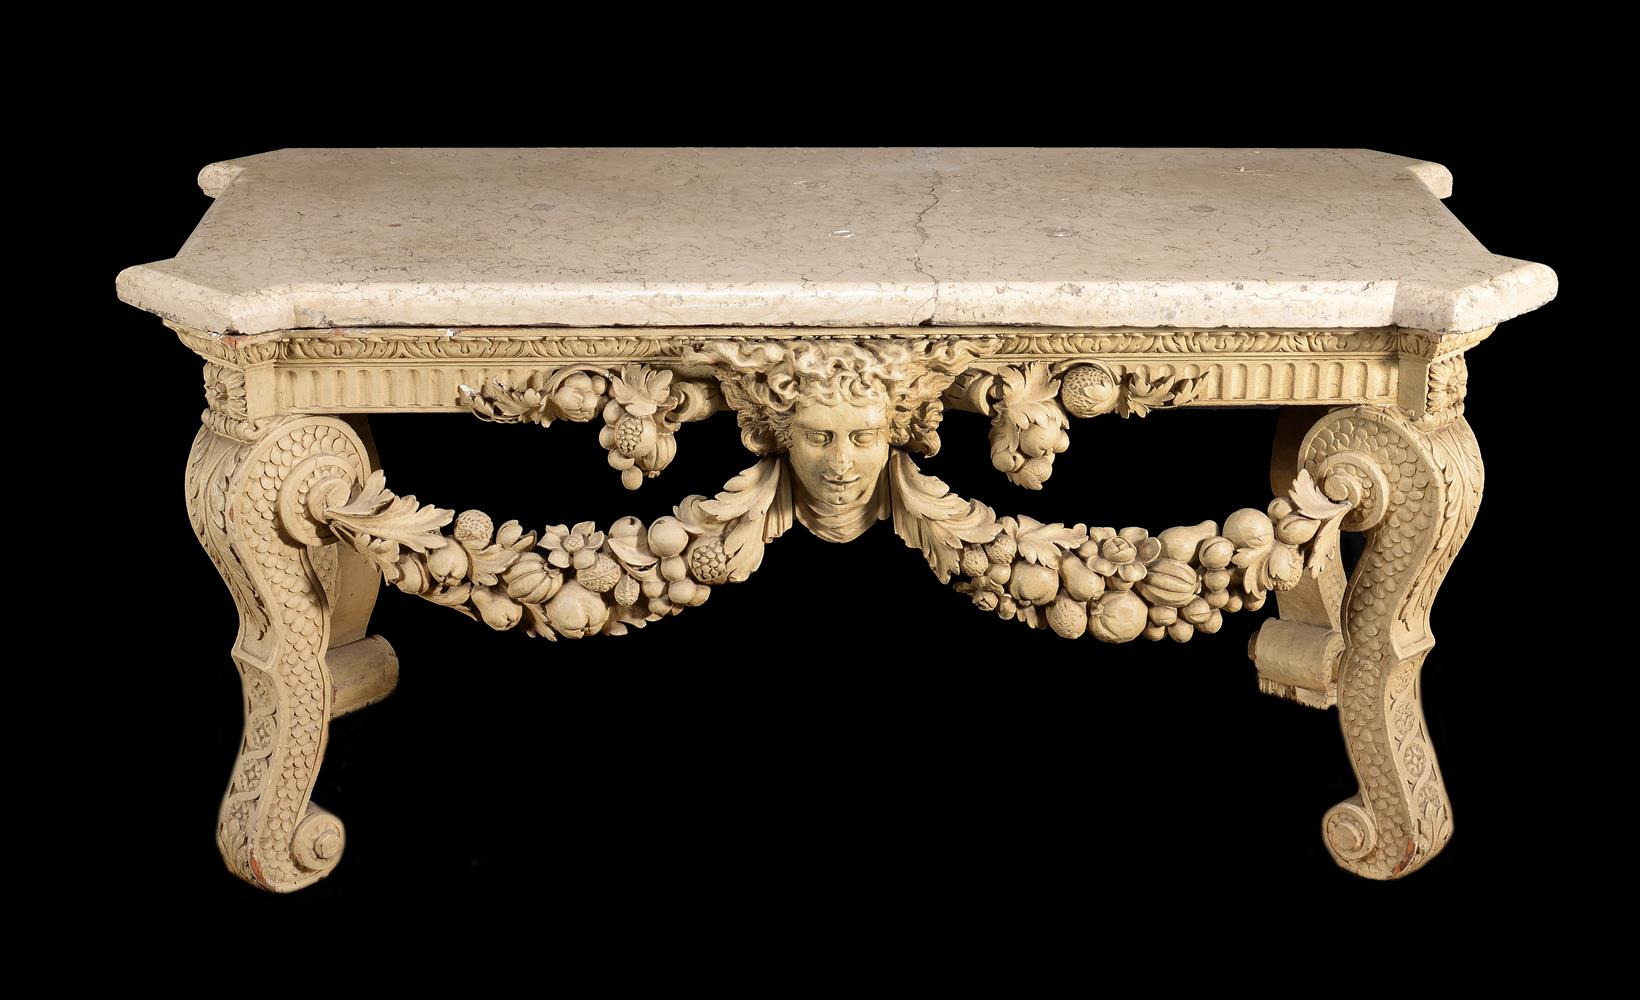 A CREAM PAINTED CARVED WOOD CONSOLE TABLE, IN THE MANNER OF WILLIAM KENT - Image 7 of 9